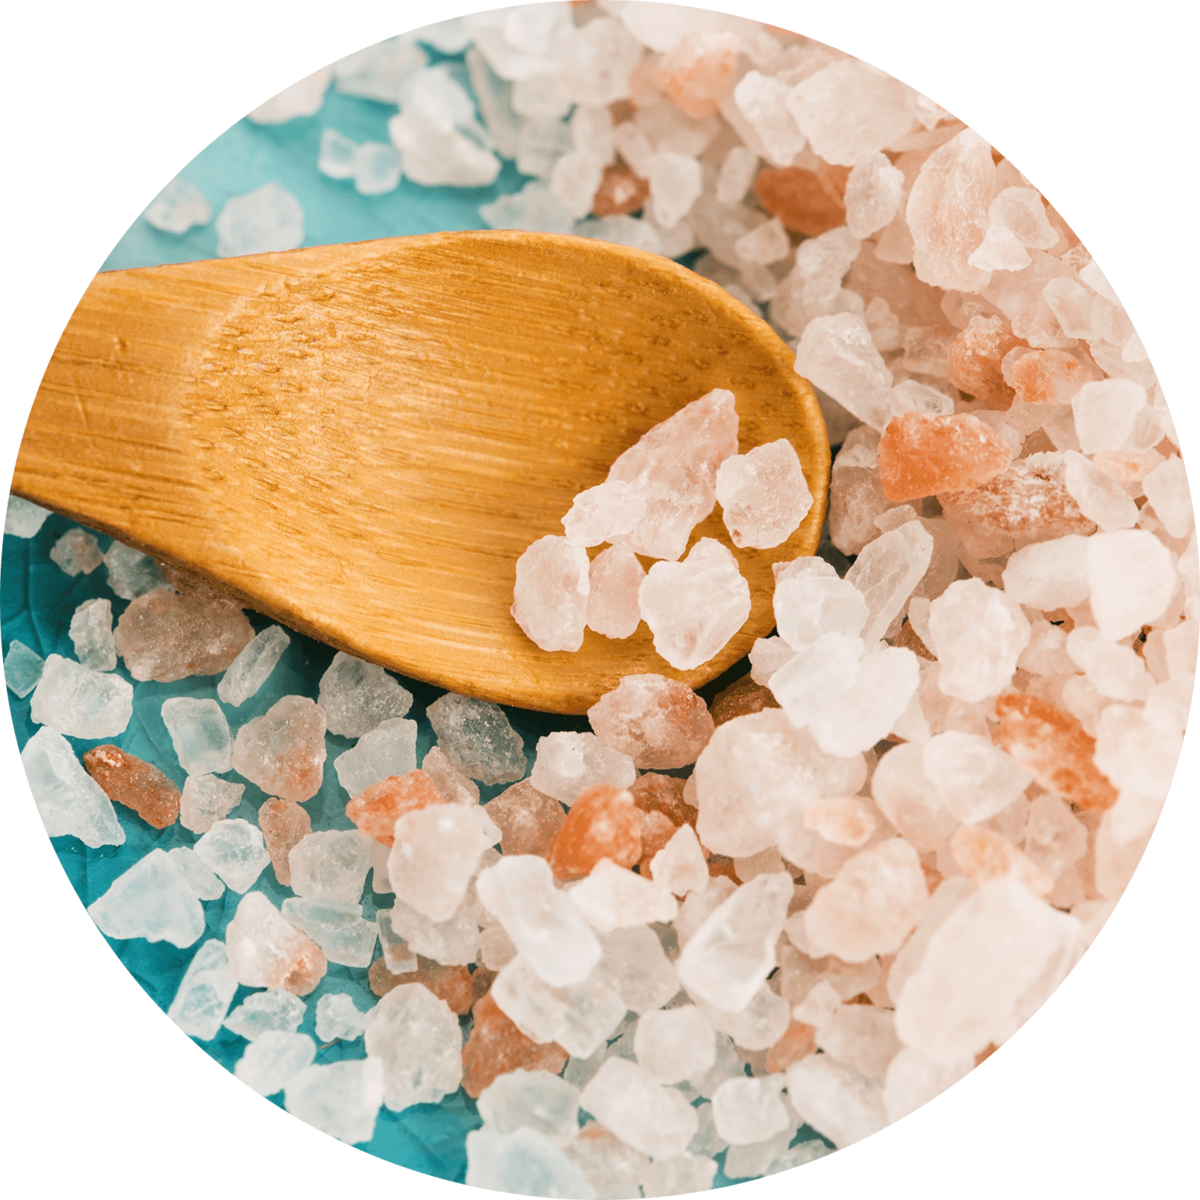 natural, pink himalayan salts for bathing and good health